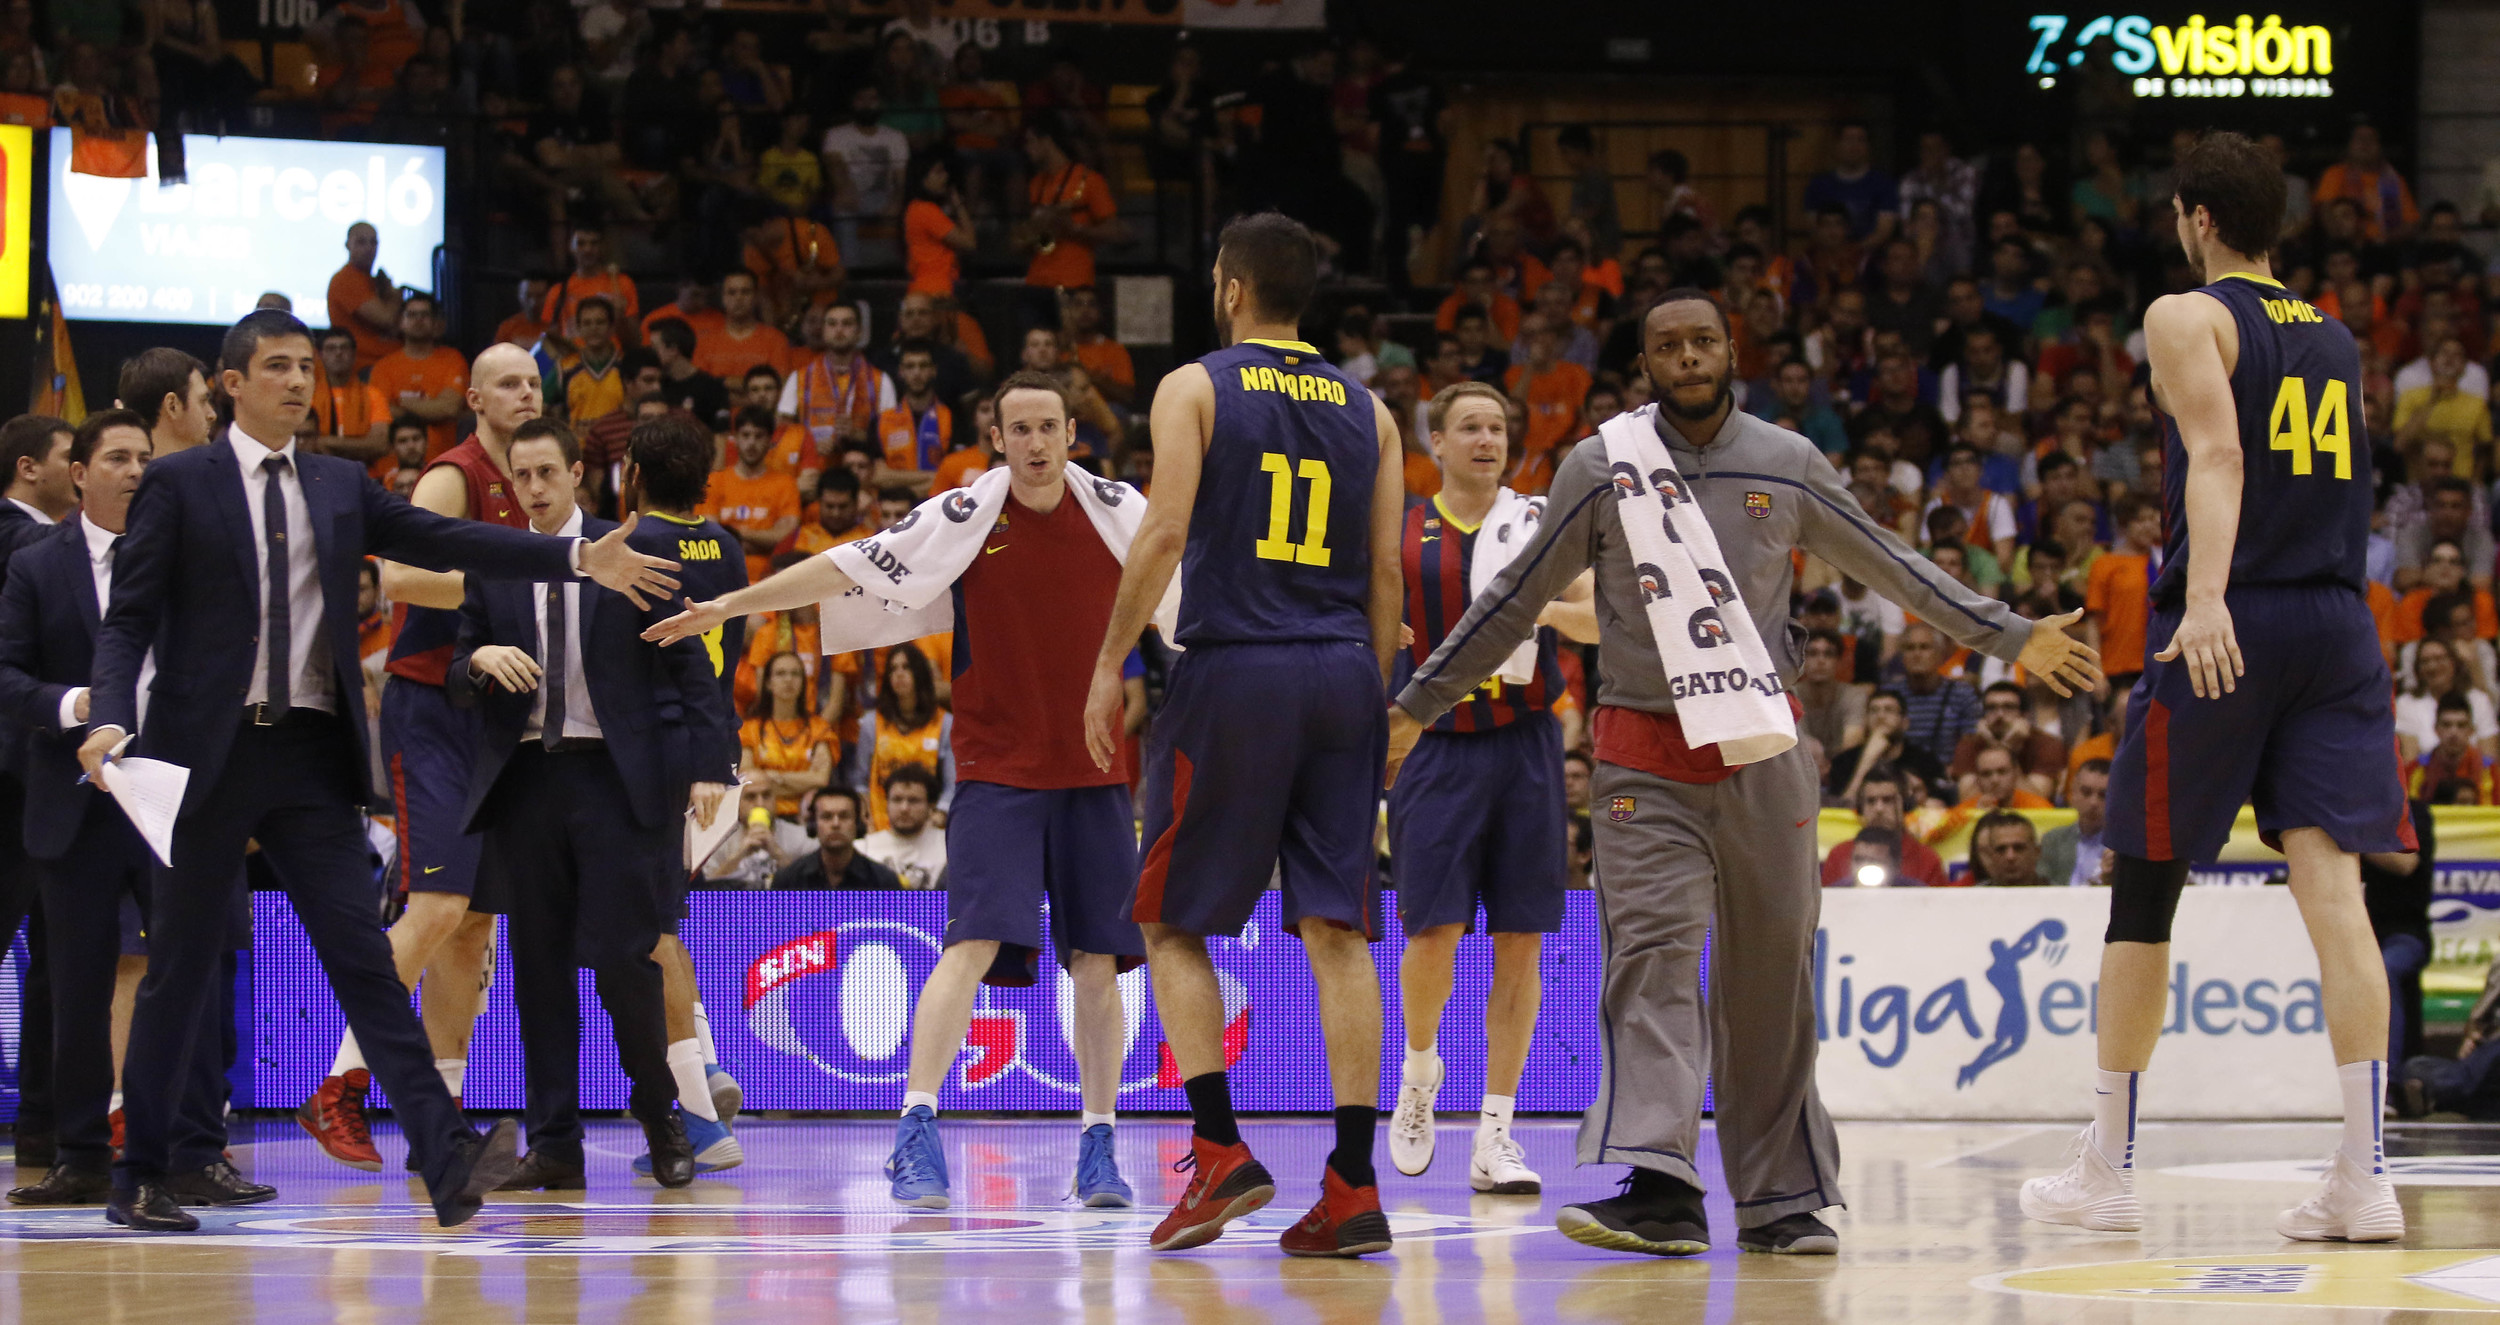 FC Barcelona needs 1 more win to advance to Spanish ACB finals.